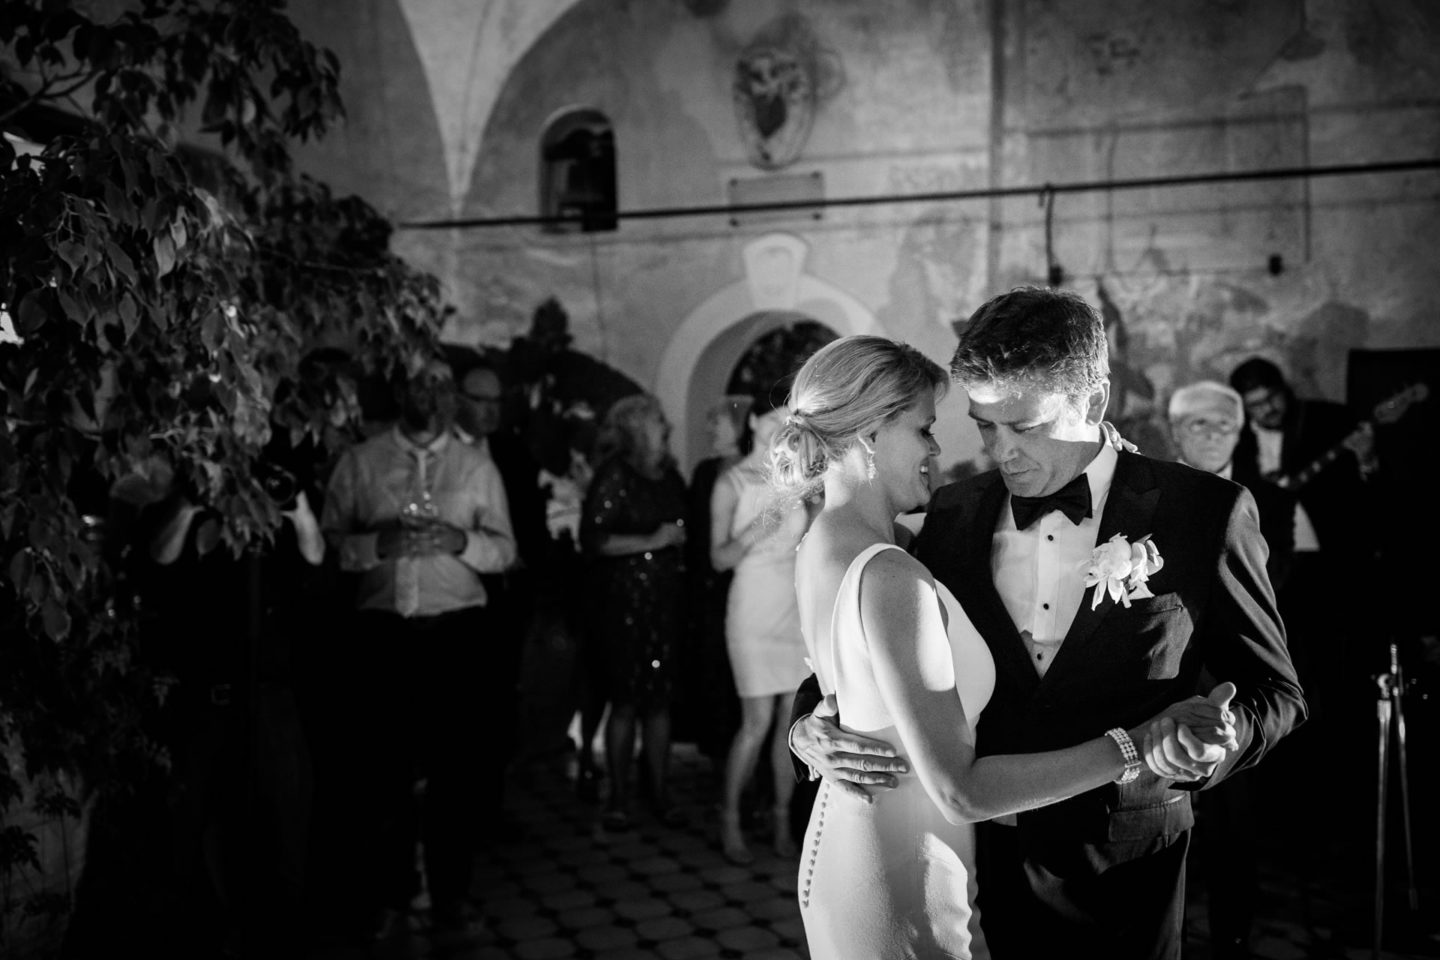 First Dance :: Wedding in Positano. Sea and love :: Luxury wedding photography - 58 :: First Dance